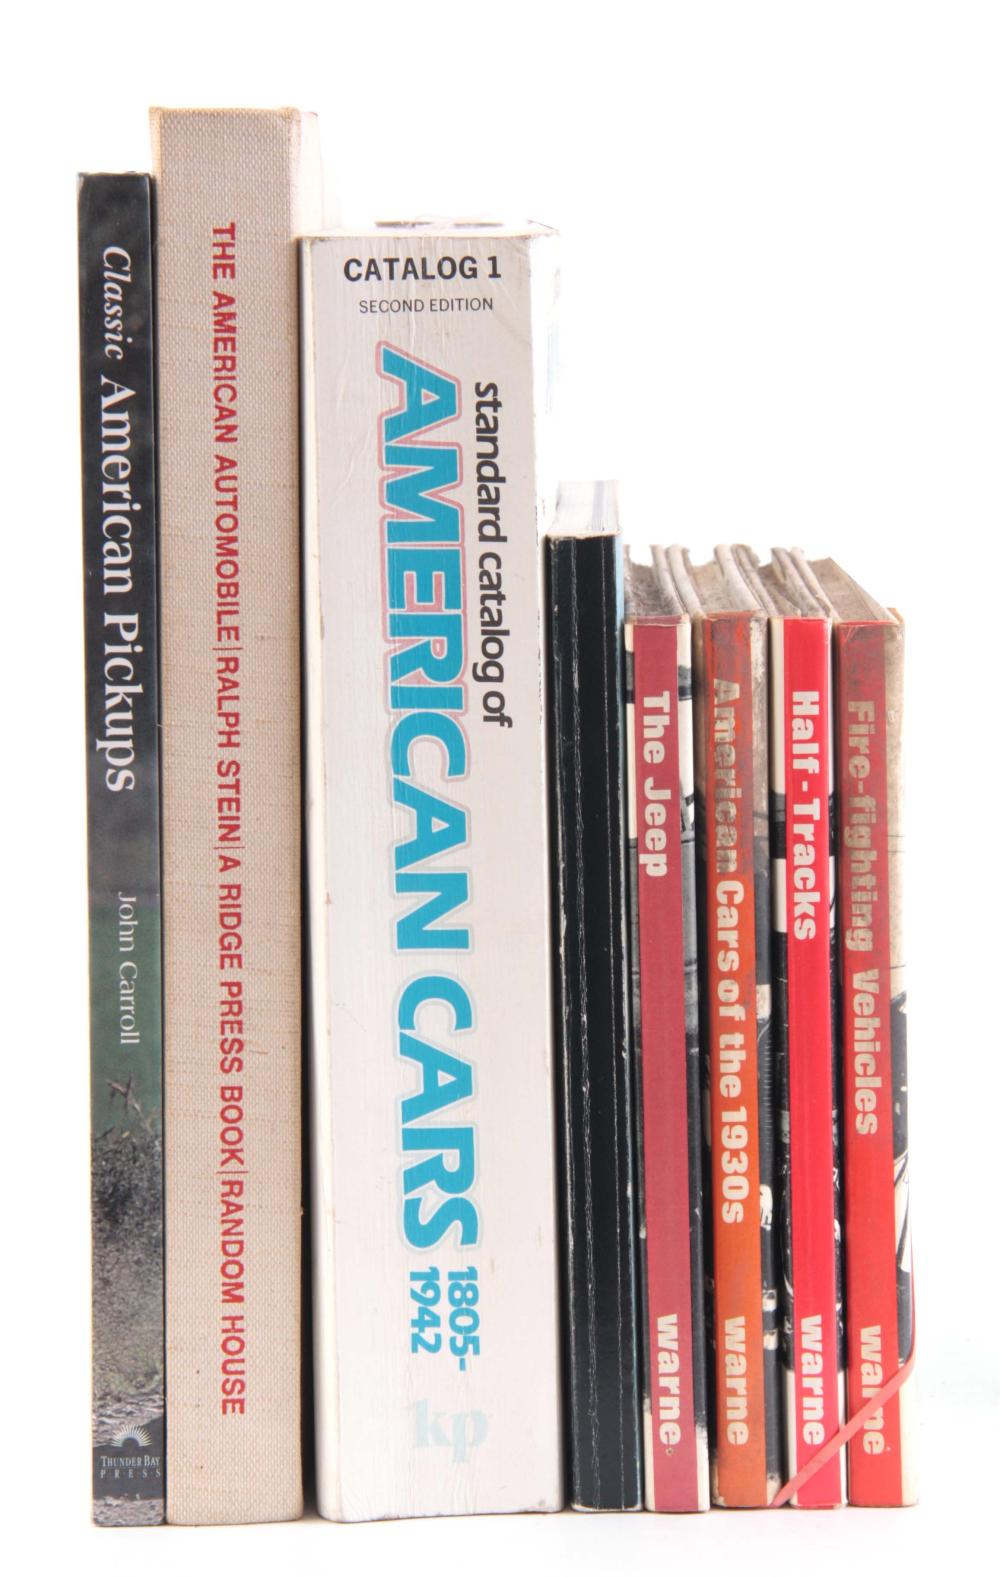 A COLLECTION OF 8 BOOKS including, HALF-TRACKS by